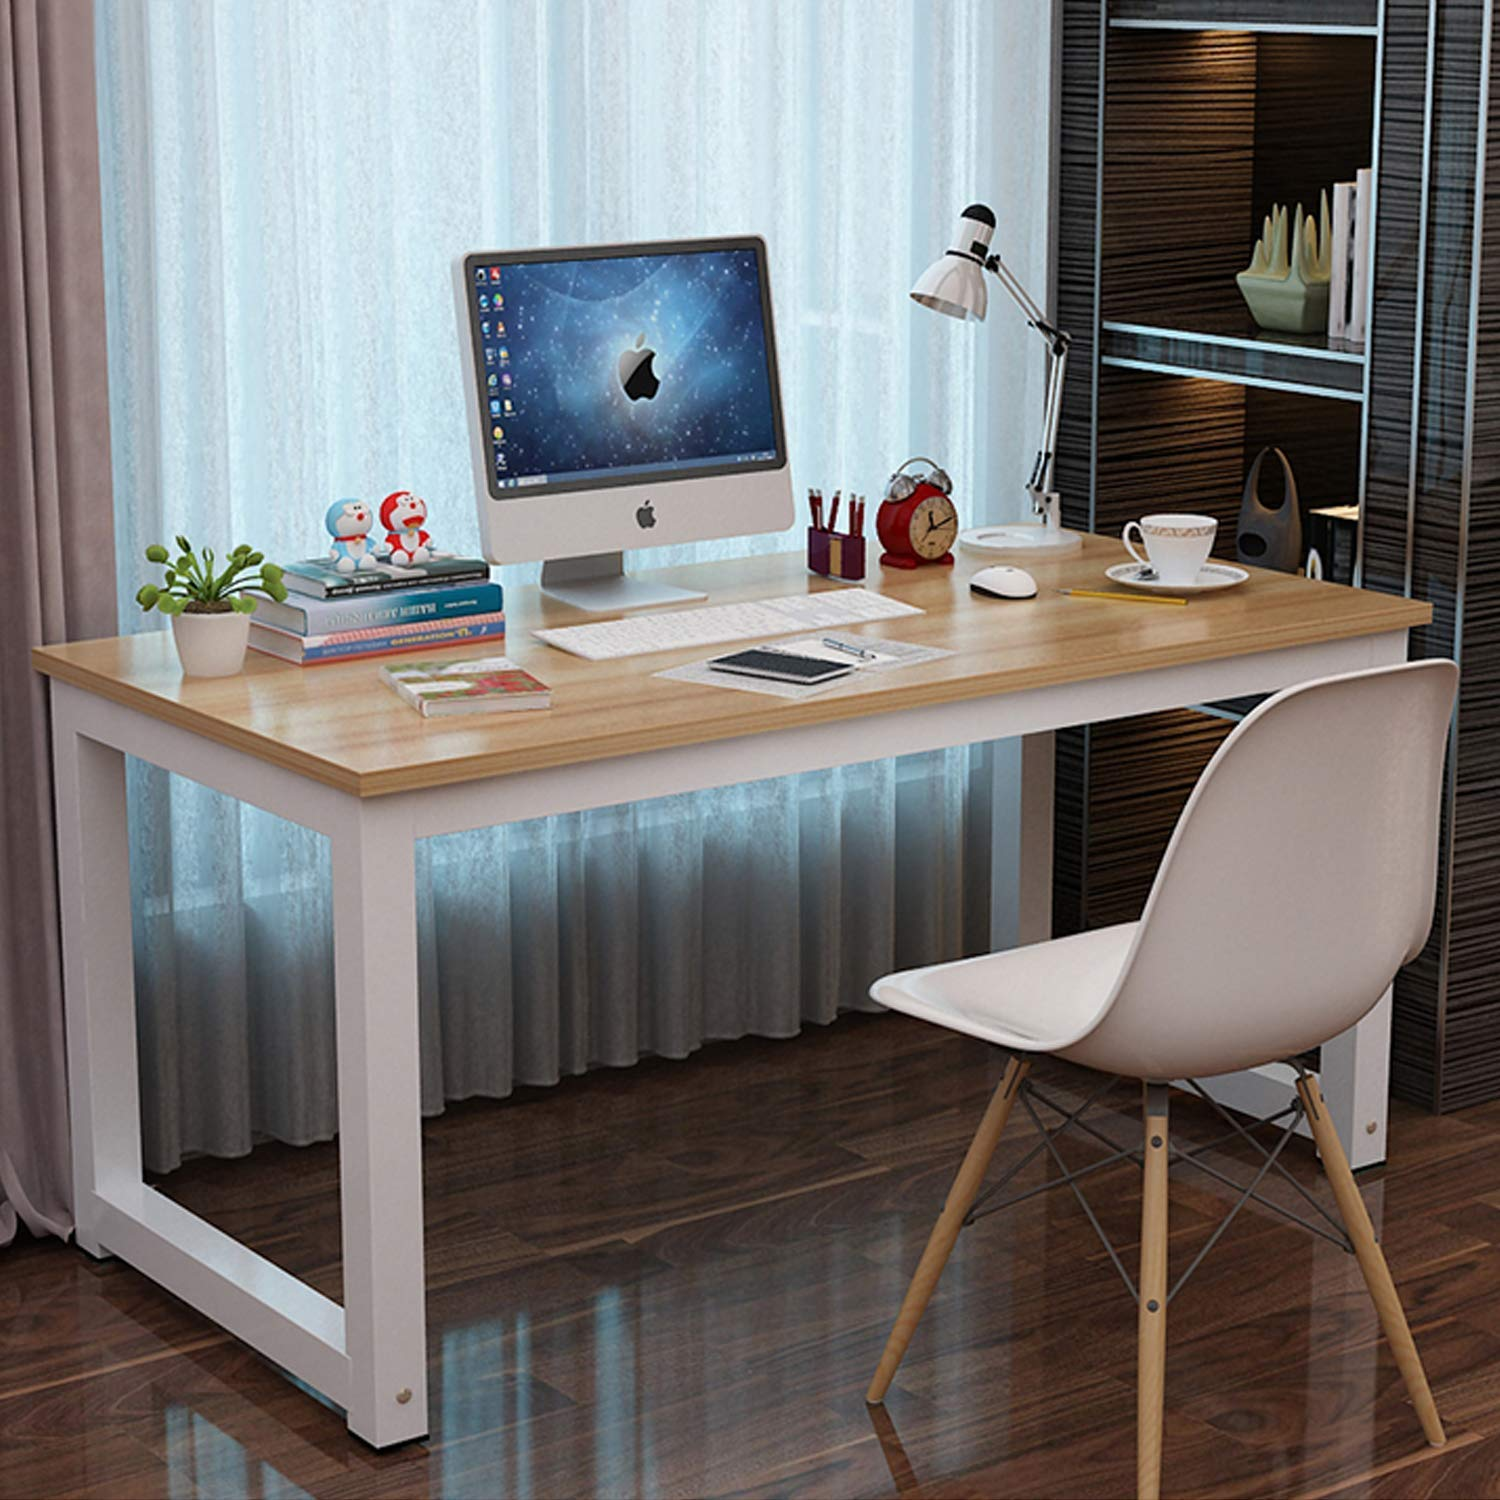 "Long World 47"" Modern Simple Style Computer Table Study Writing Desk Office Desk Rectangular Dining Table PC Desk Laptop Table Small Desk Gaming Desk Workstation Home Wood &Metal (Beige & White Leg)"